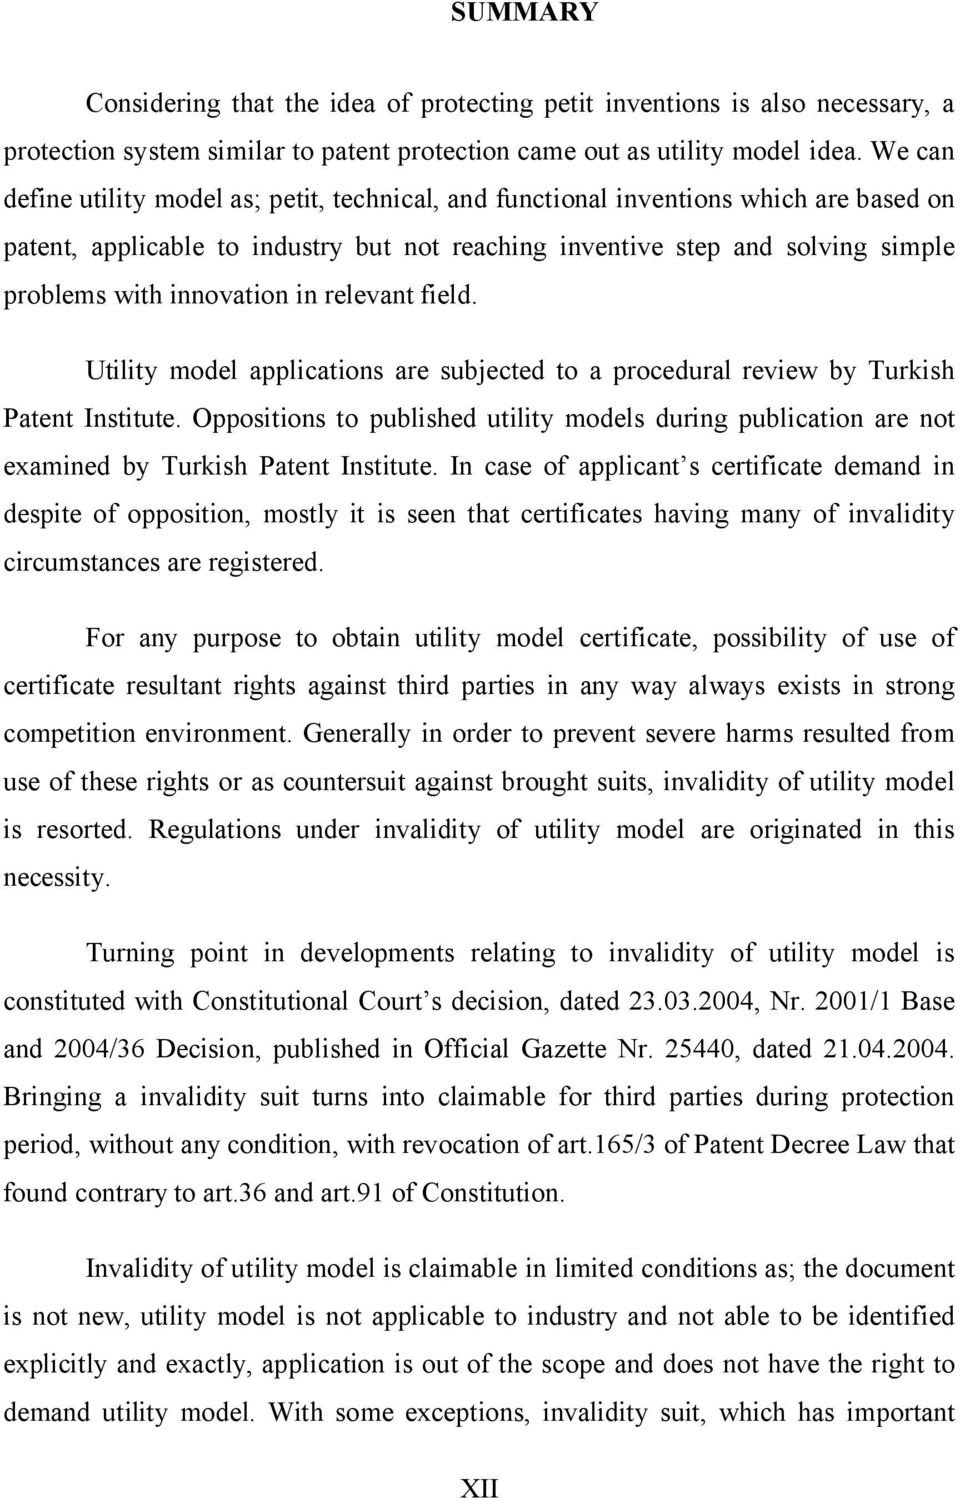 innovation in relevant field. Utility model applications are subjected to a procedural review by Turkish Patent Institute.